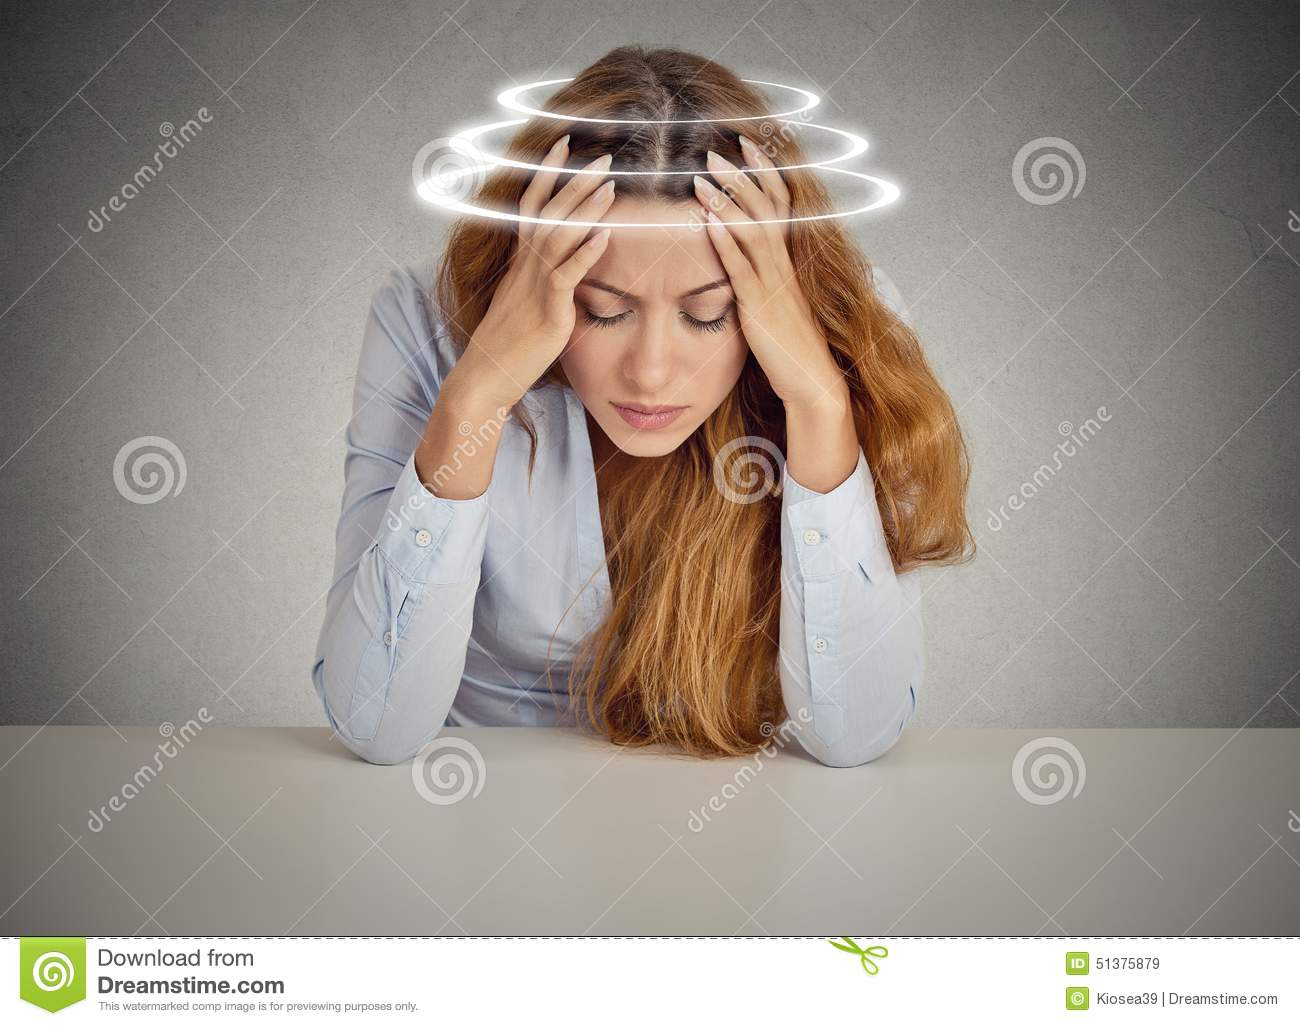 Woman with vertigo. Young female patient suffering from dizziness